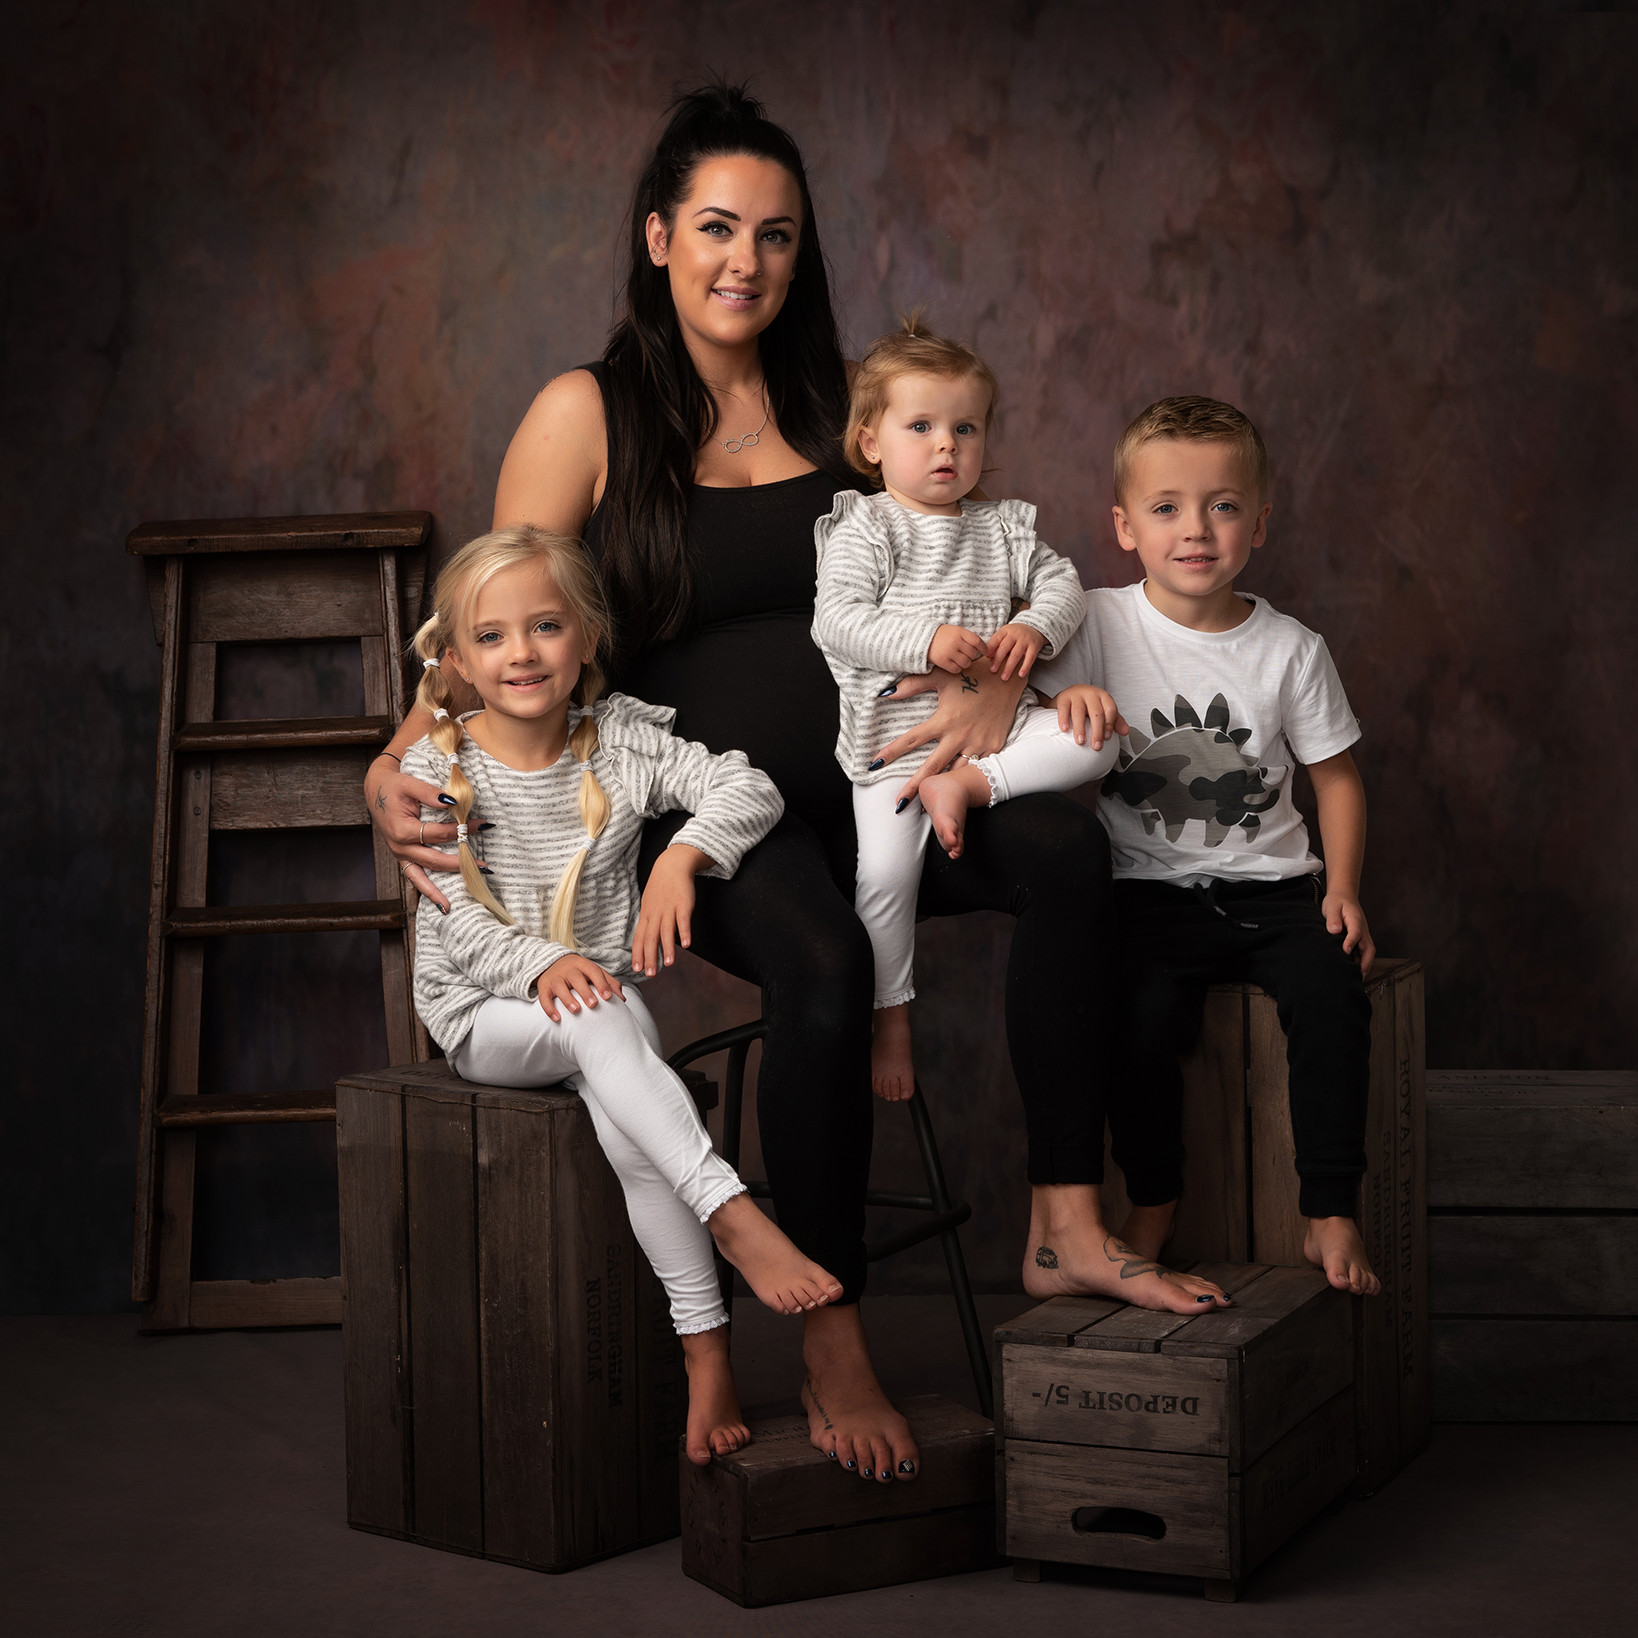 mum with children studio portrait by Family photographer Lancashire